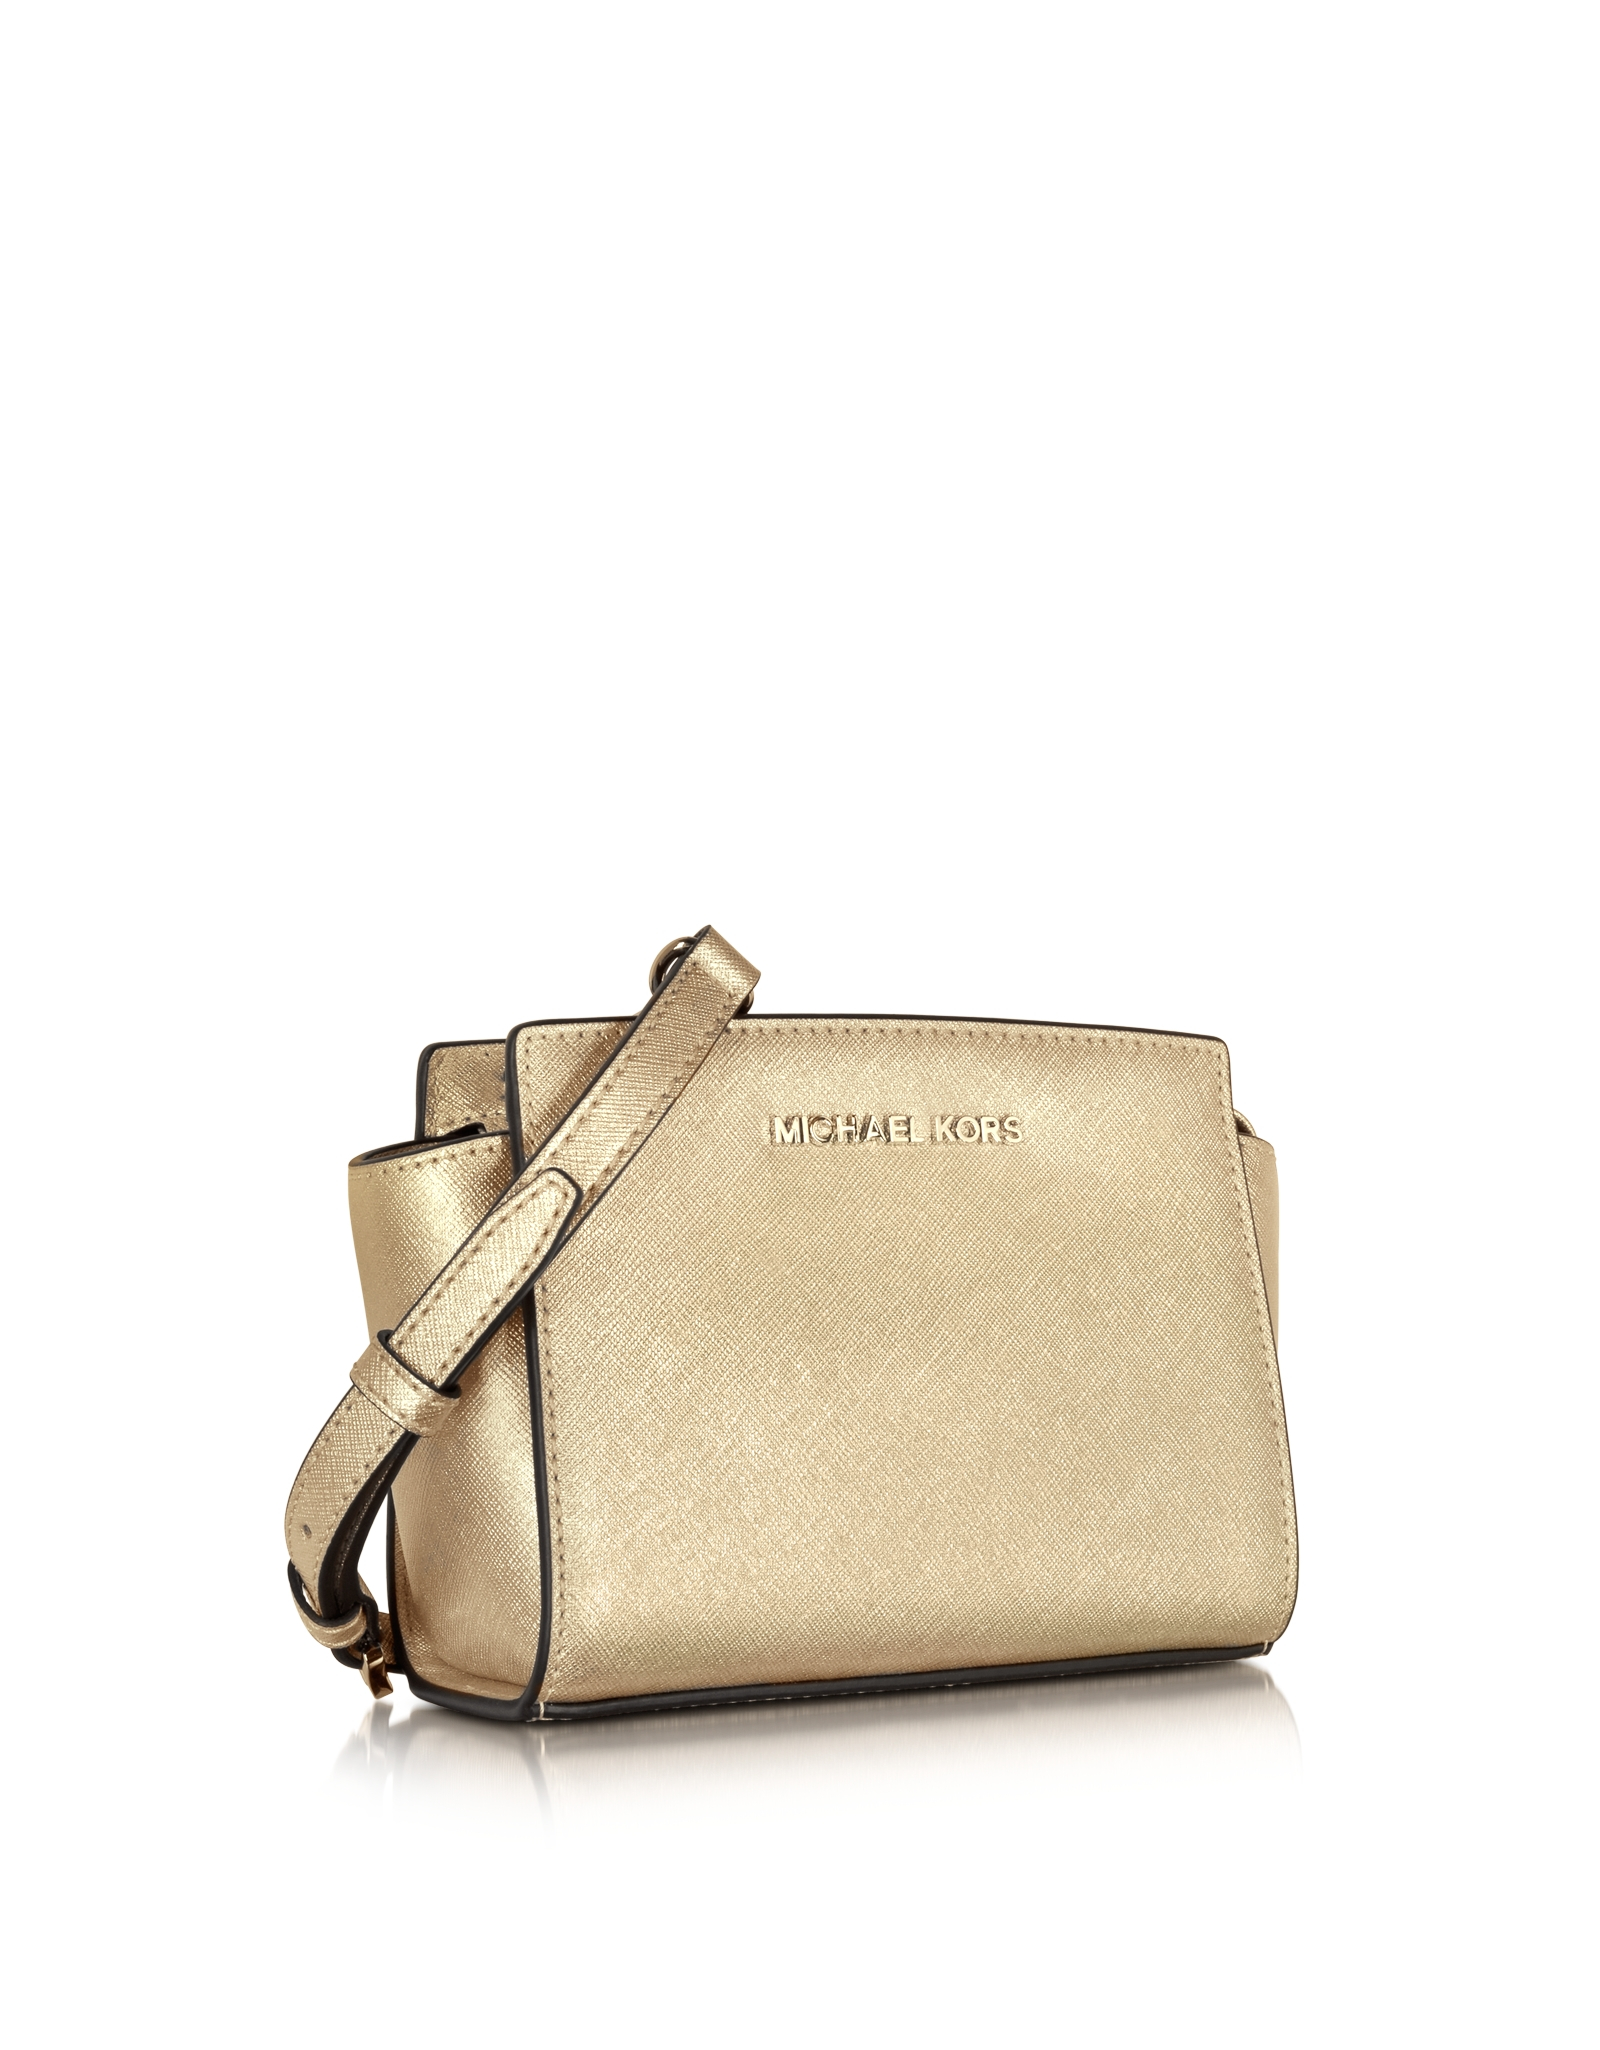 e8633494434237 Michael Kors Pale Gold Metallic Saffiano Leather Selma Mini Messenger Bag  in Metallic - Lyst